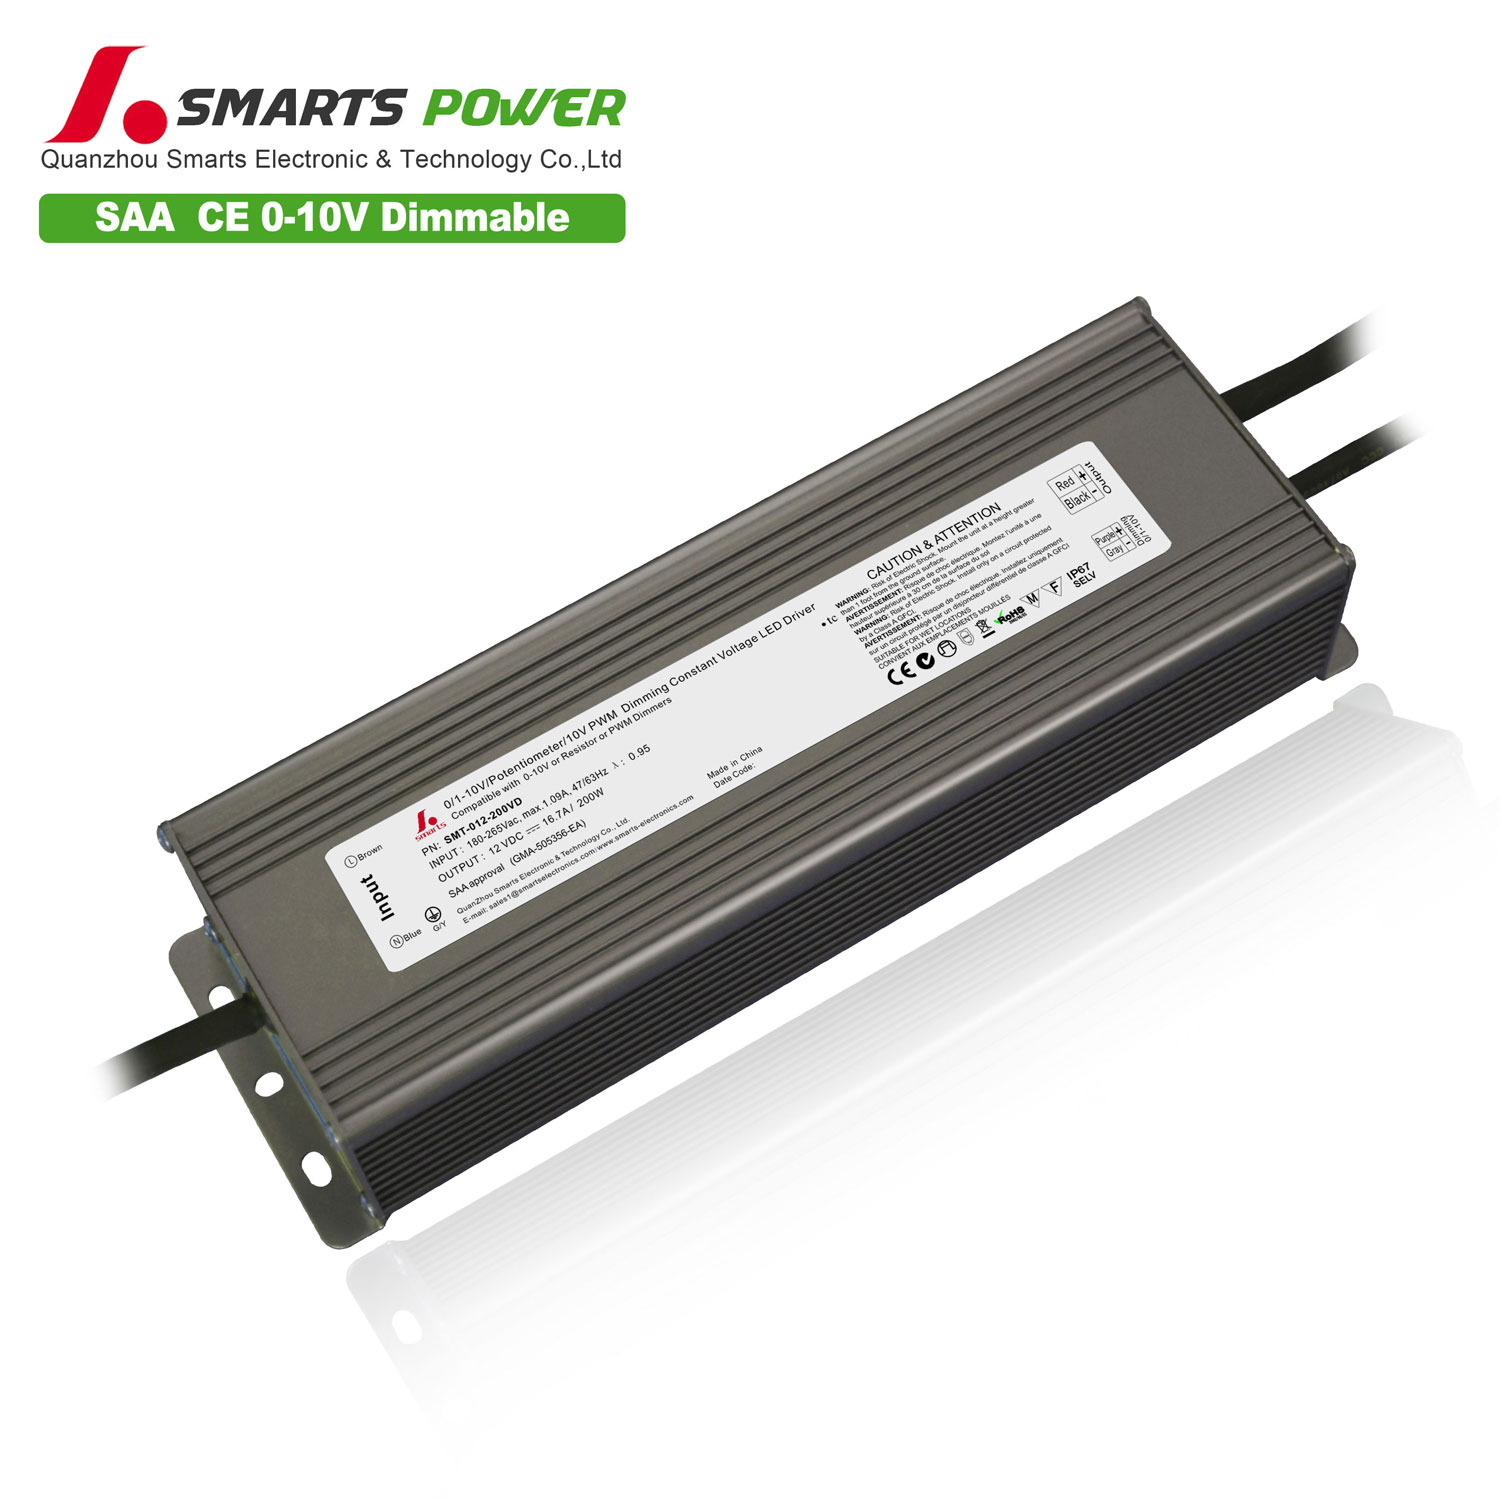 0-10v dimmable led driver for led light